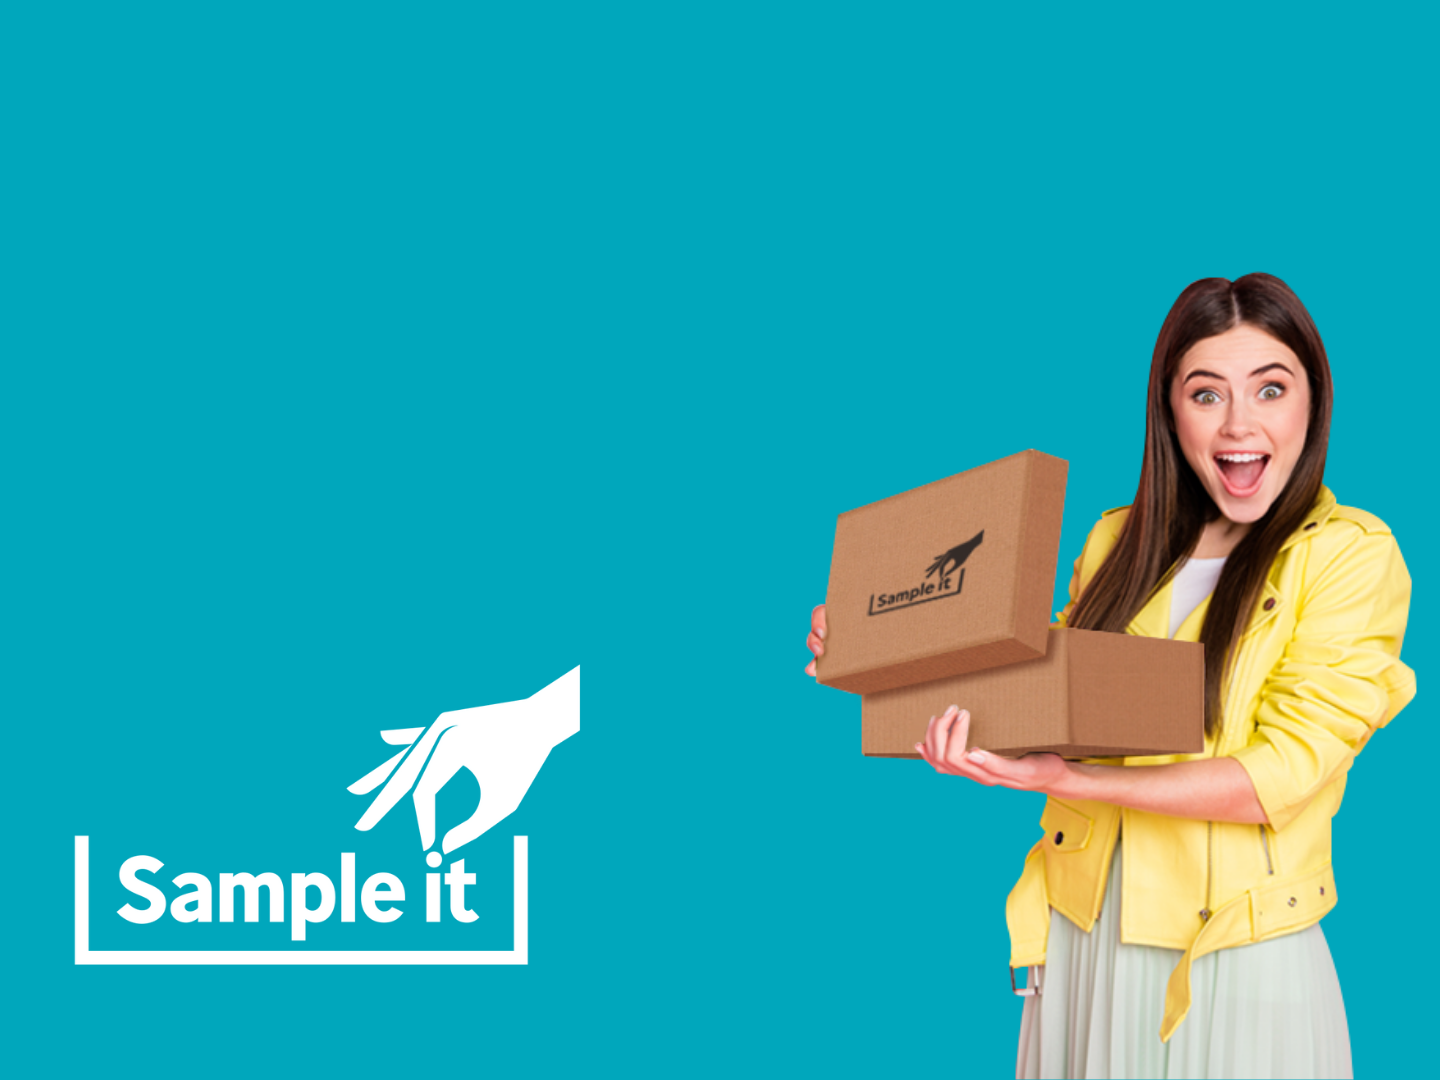 EFMP Irish partners FMI, have launched an innovative new direct-to-consumer business called  Sample It.